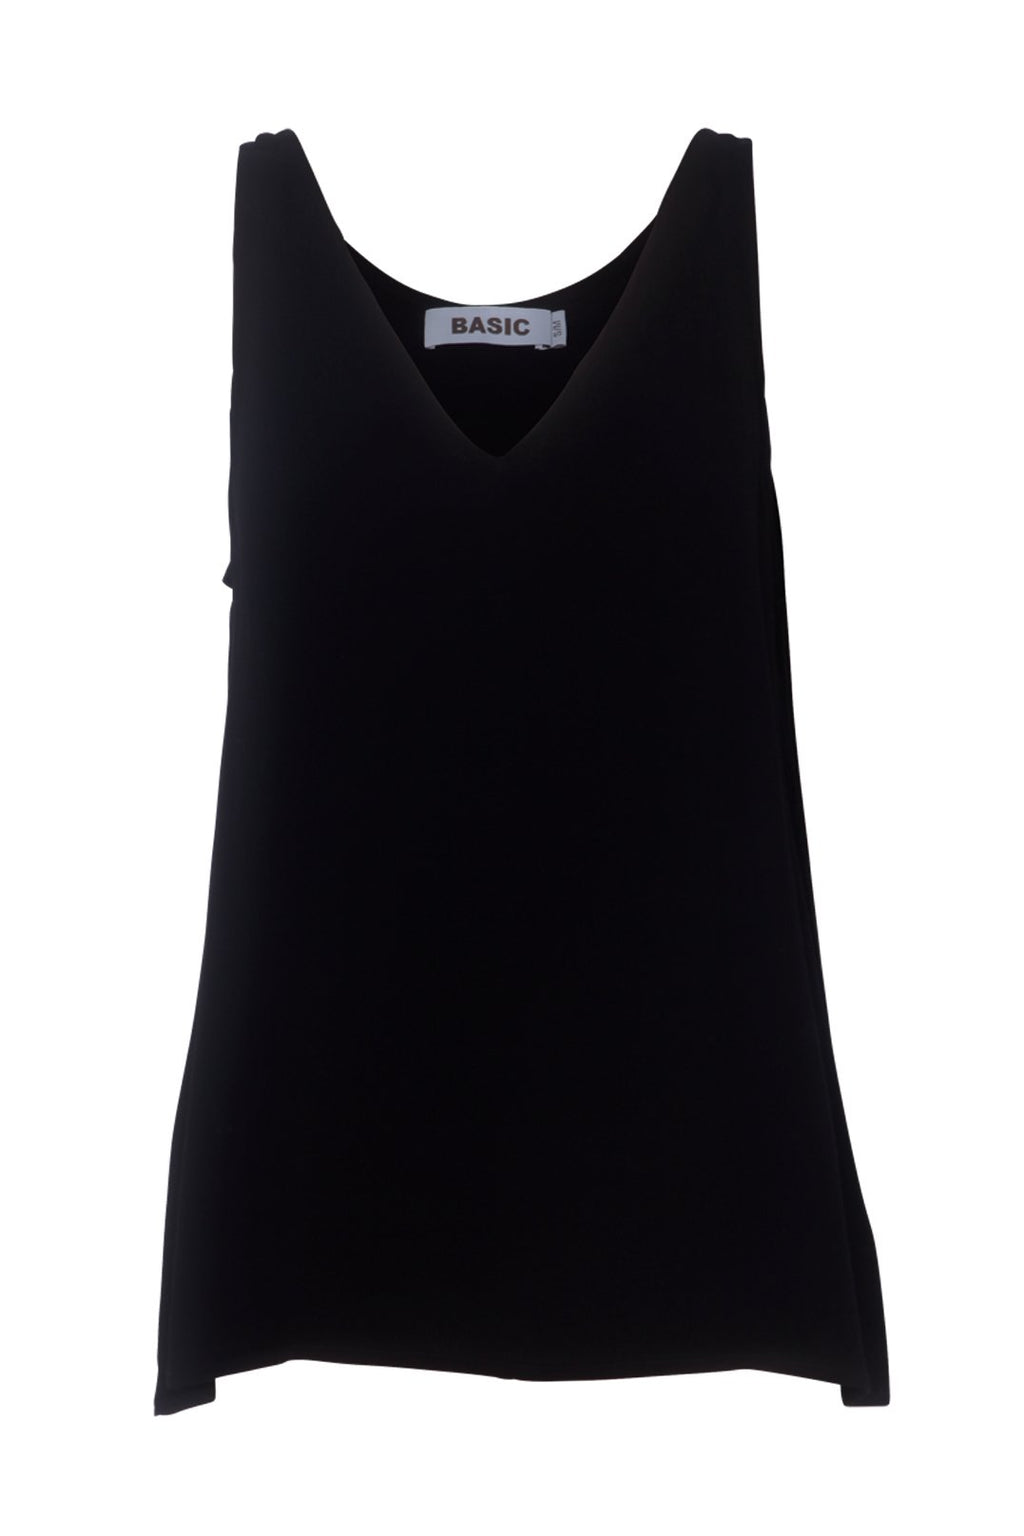 Basic Tank - Ebony - Isle of Mine Clothing - Basic